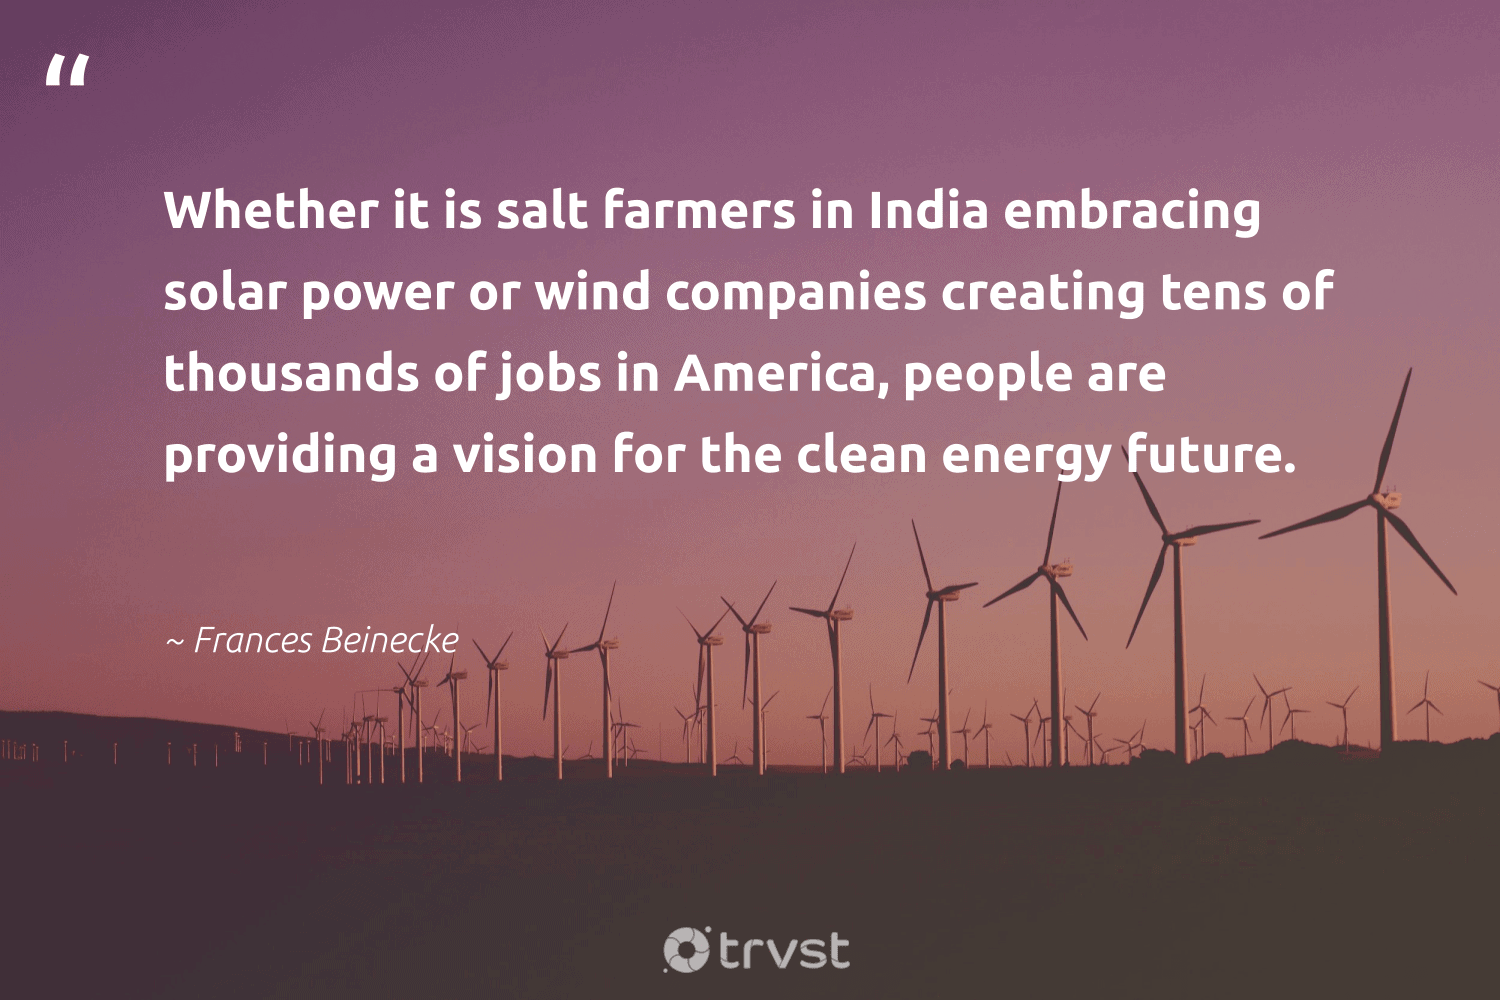 """""""Whether it is salt farmers in India embracing solar power or wind companies creating tens of thousands of jobs in America, people are providing a vision for the clean energy future.""""  - Frances Beinecke #trvst #quotes #solar #india #energy #cleanenergy #solarpower #solarfarms #renewableenergy #carbon #cop21 #ecoconscious"""